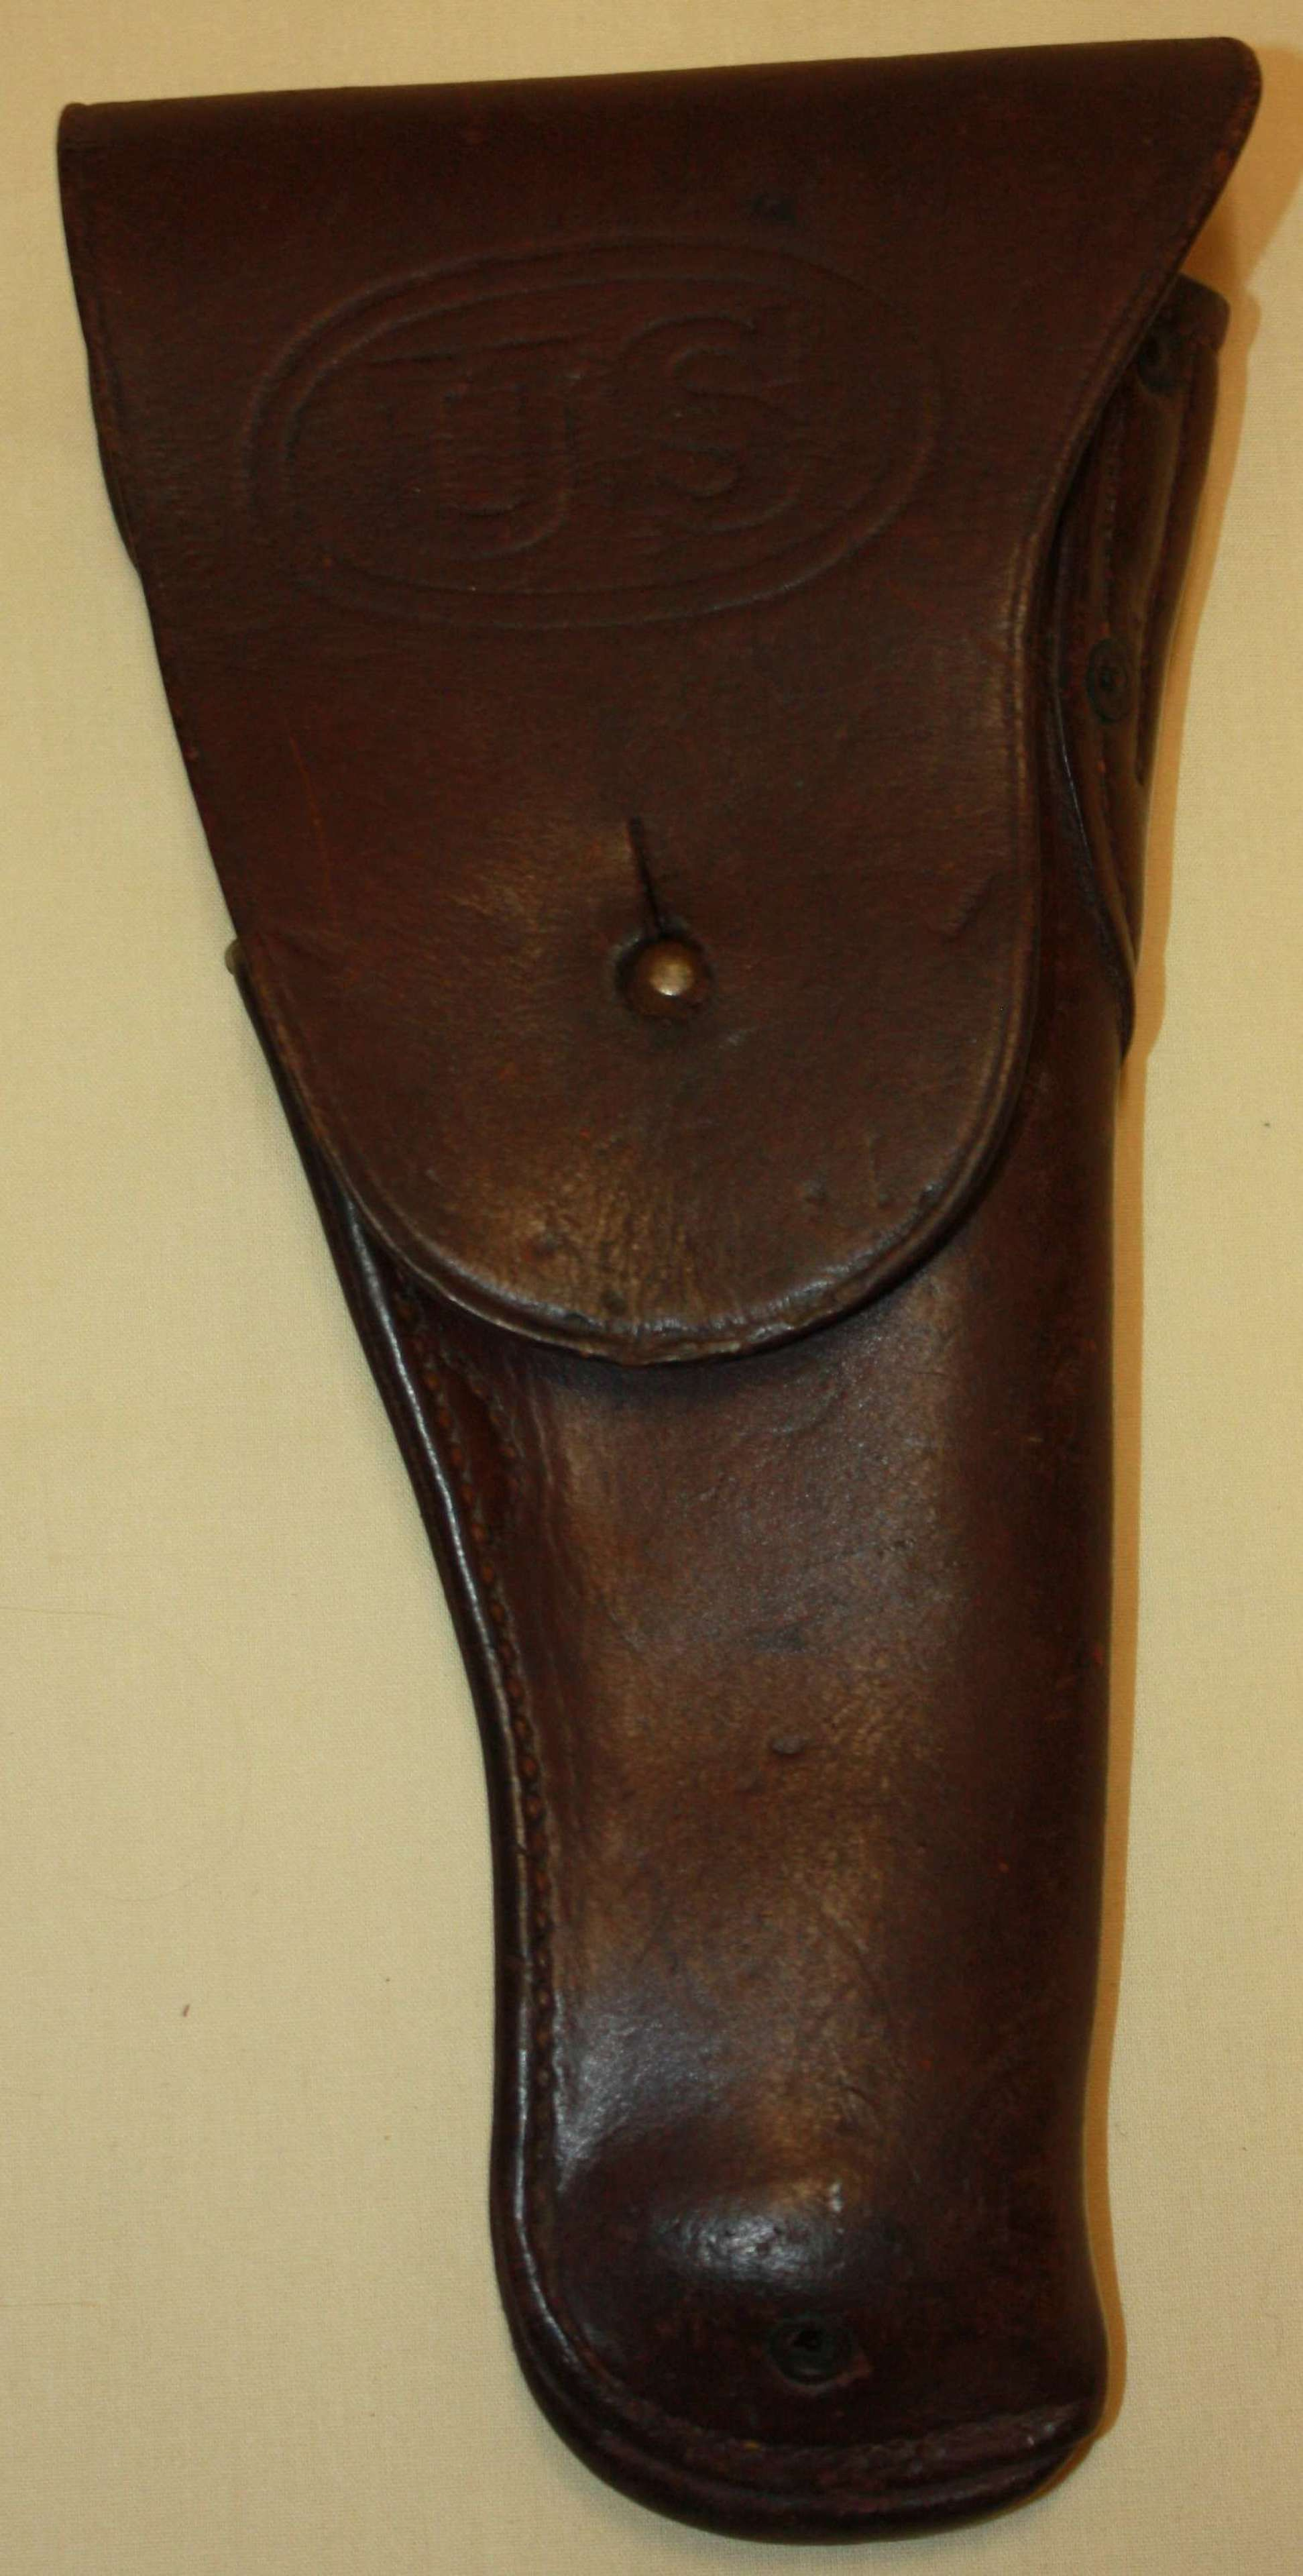 A WWI PERIOD US PISTOL HOLSTER COLT 1911 PATTERN